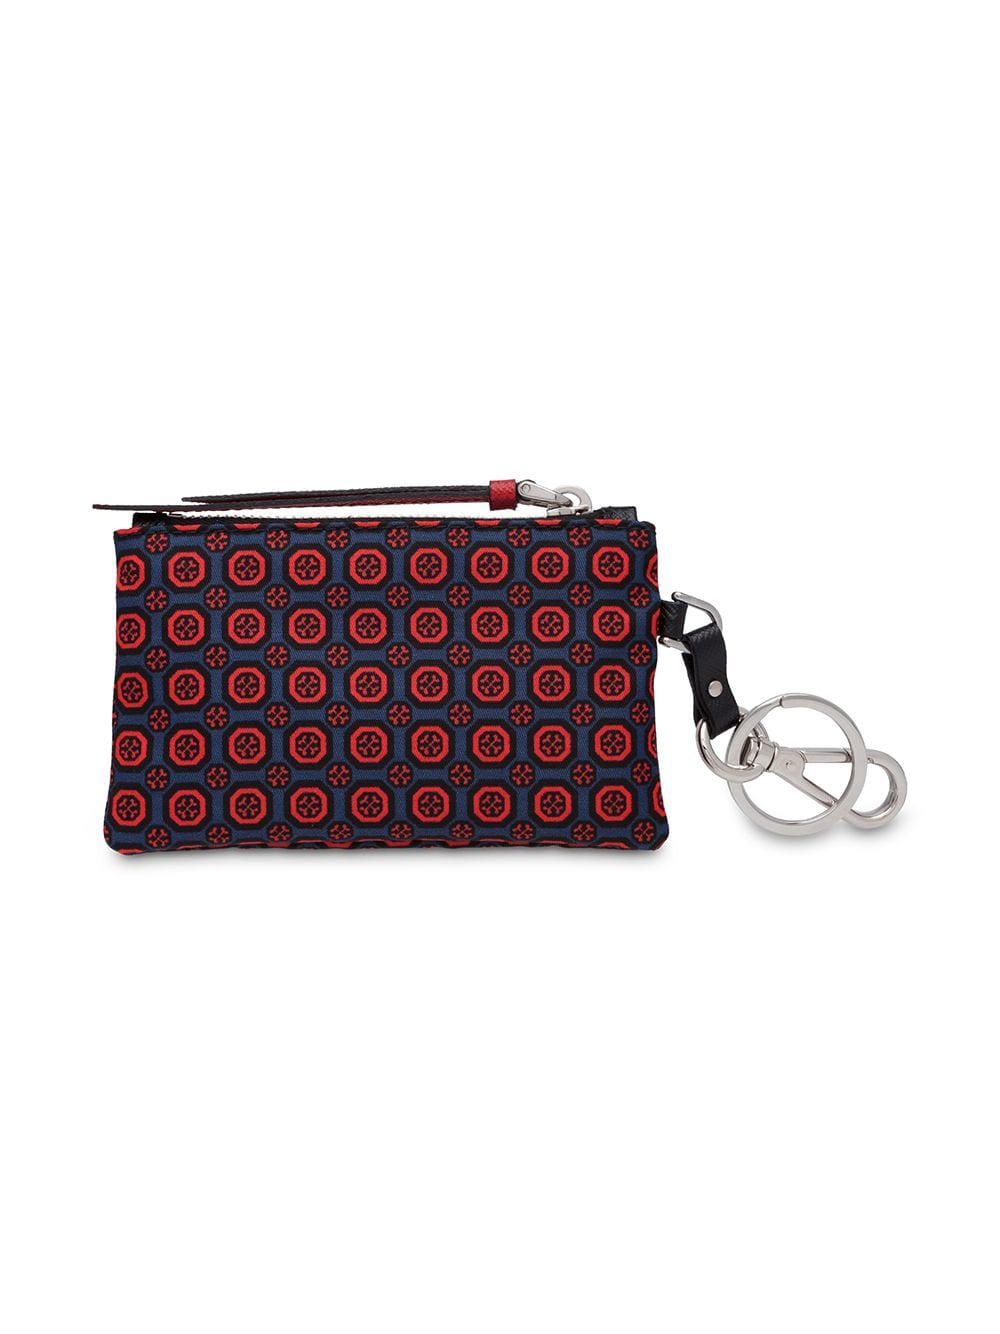 9005496ec9 Prada Saffiano Leather And Nylon Keychain Trick in Red for Men - Lyst